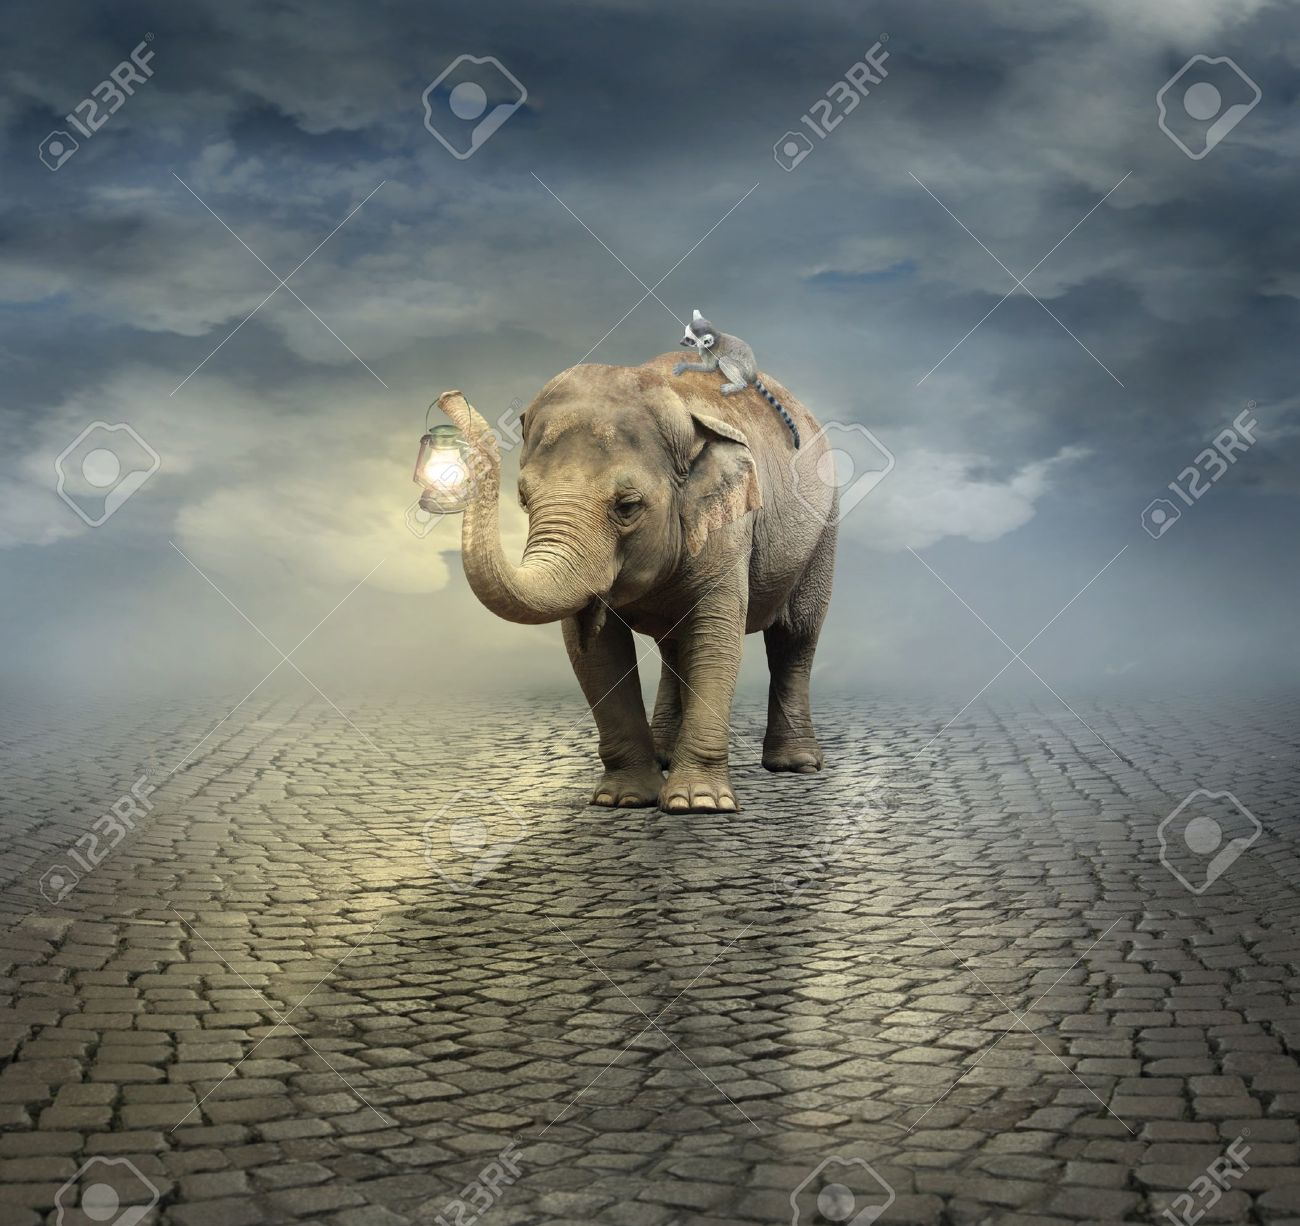 Surreal artistic illustration with an elephant carrying a lemur on its back and a lantern with its trunk - 21892520